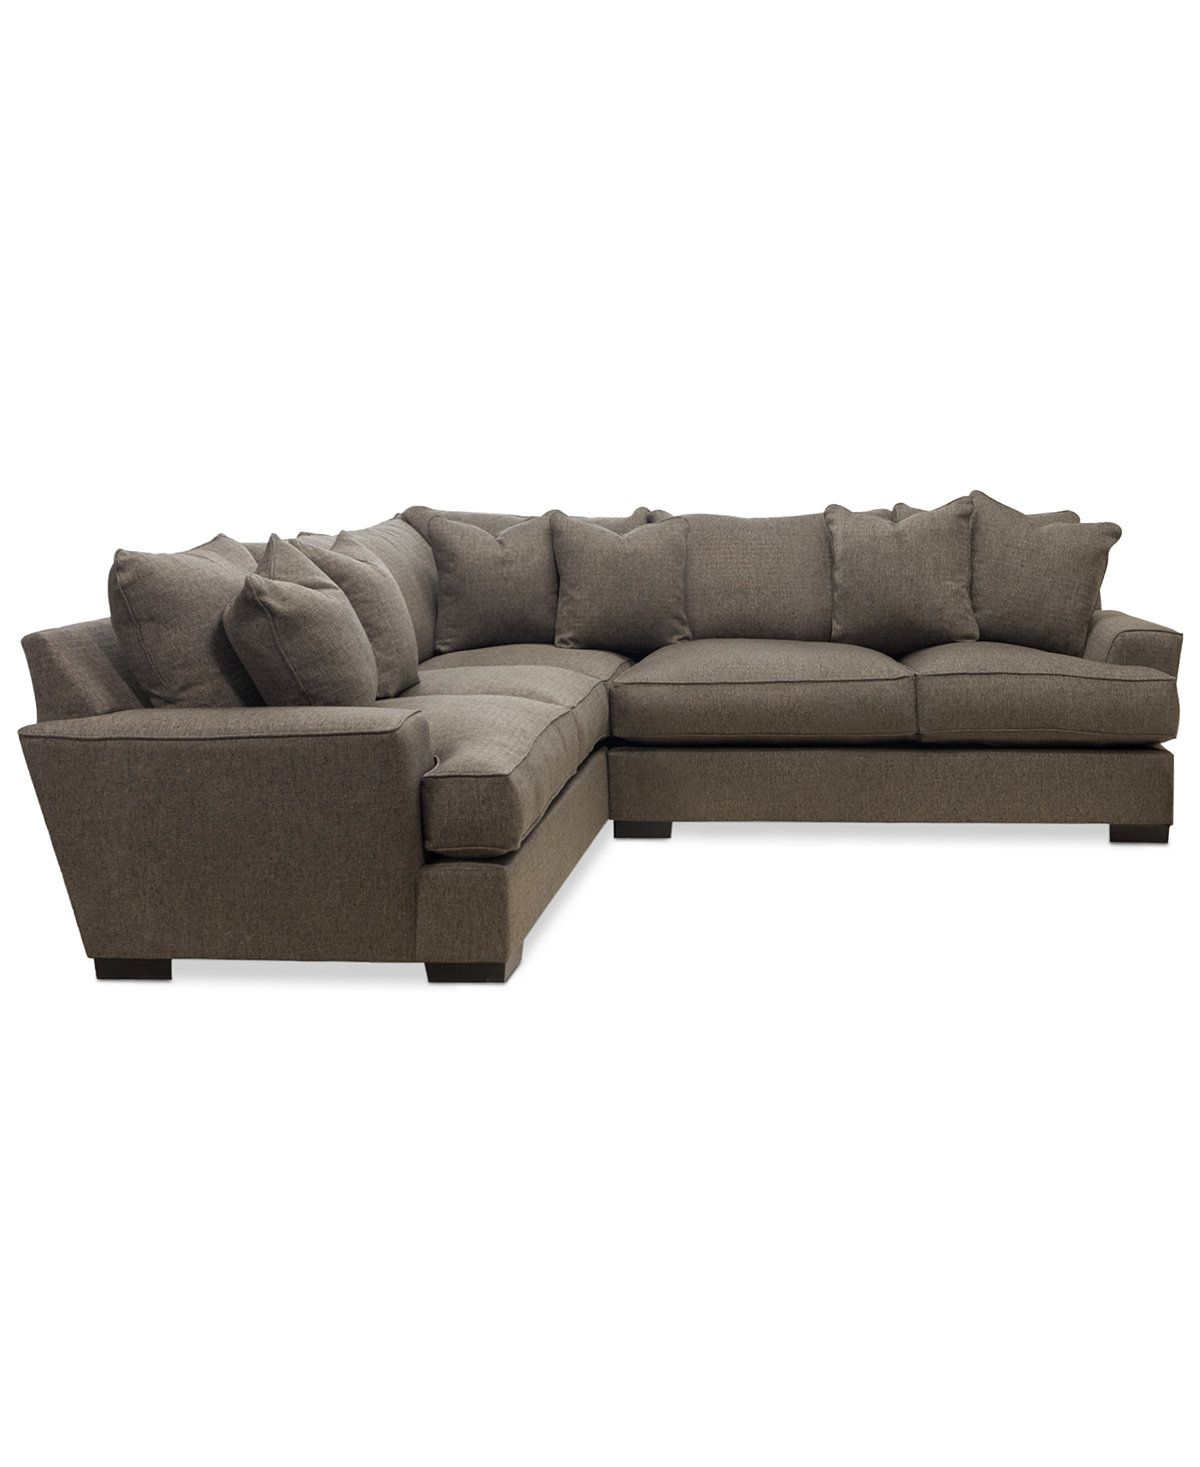 Terrific Ainsley 2 Piece L Shaped Fabric Sectional With 6 Toss Pabps2019 Chair Design Images Pabps2019Com